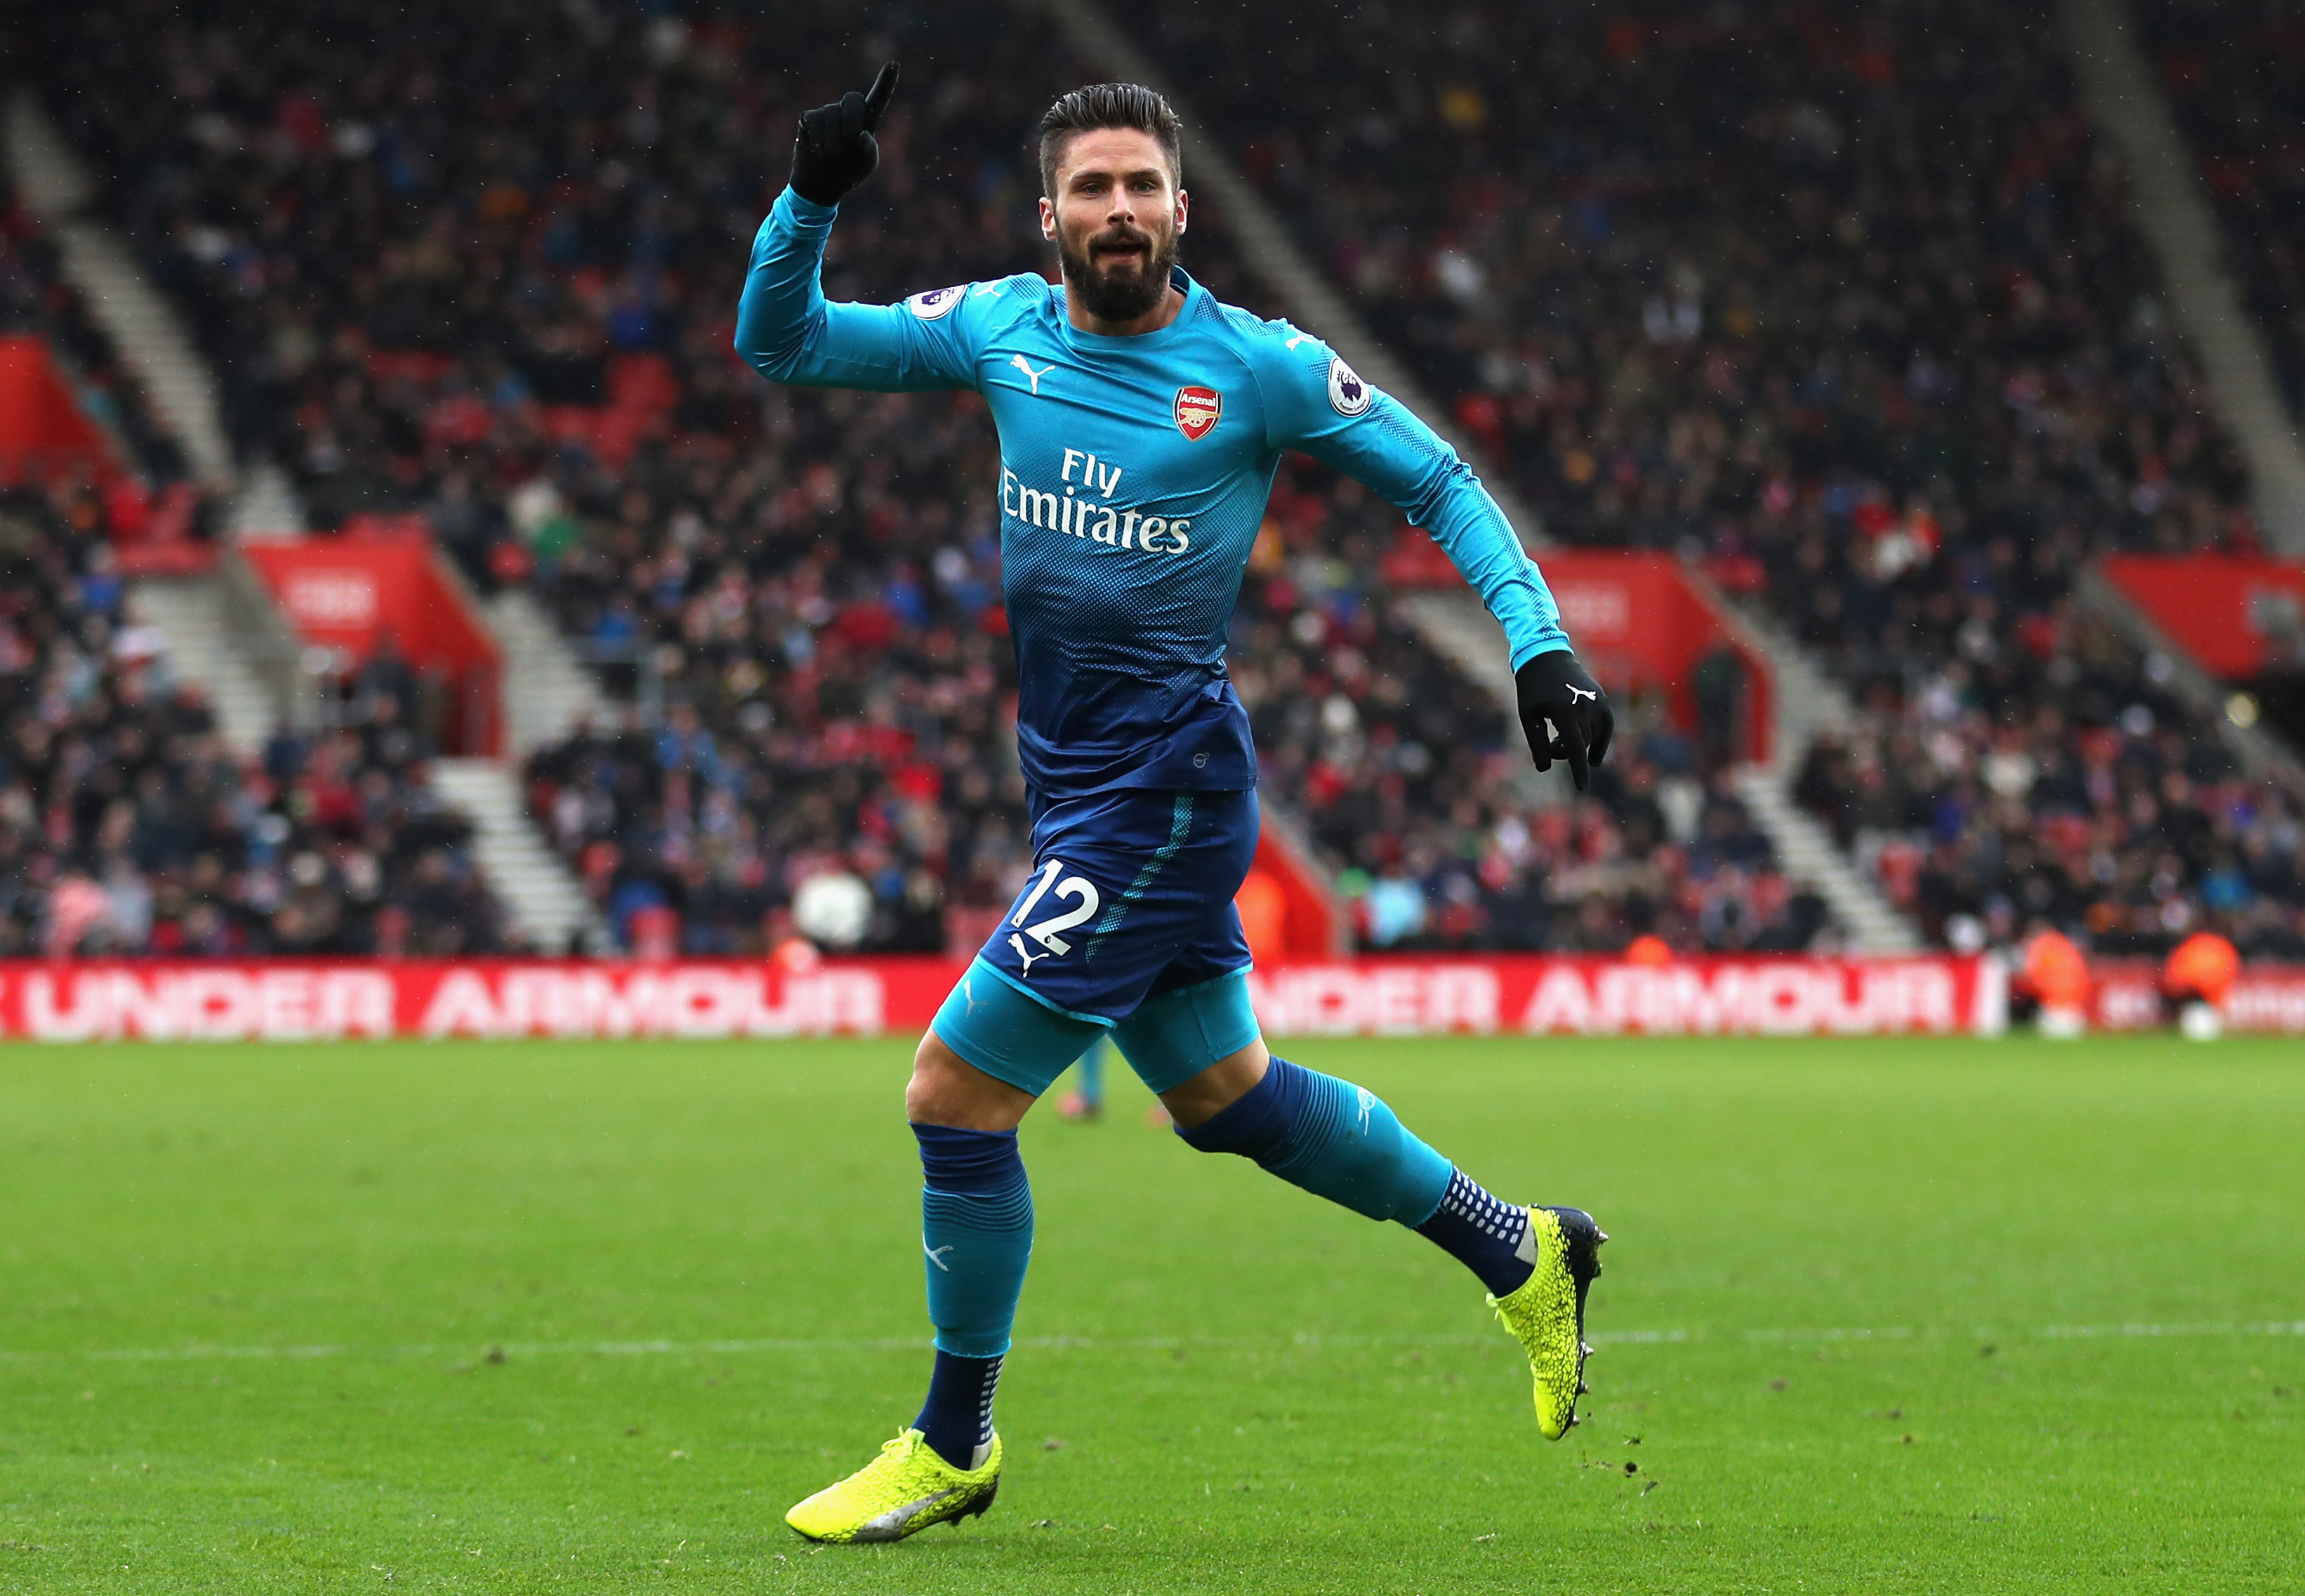 Giroud comes to Arsenal's rescue in draw with Southampton